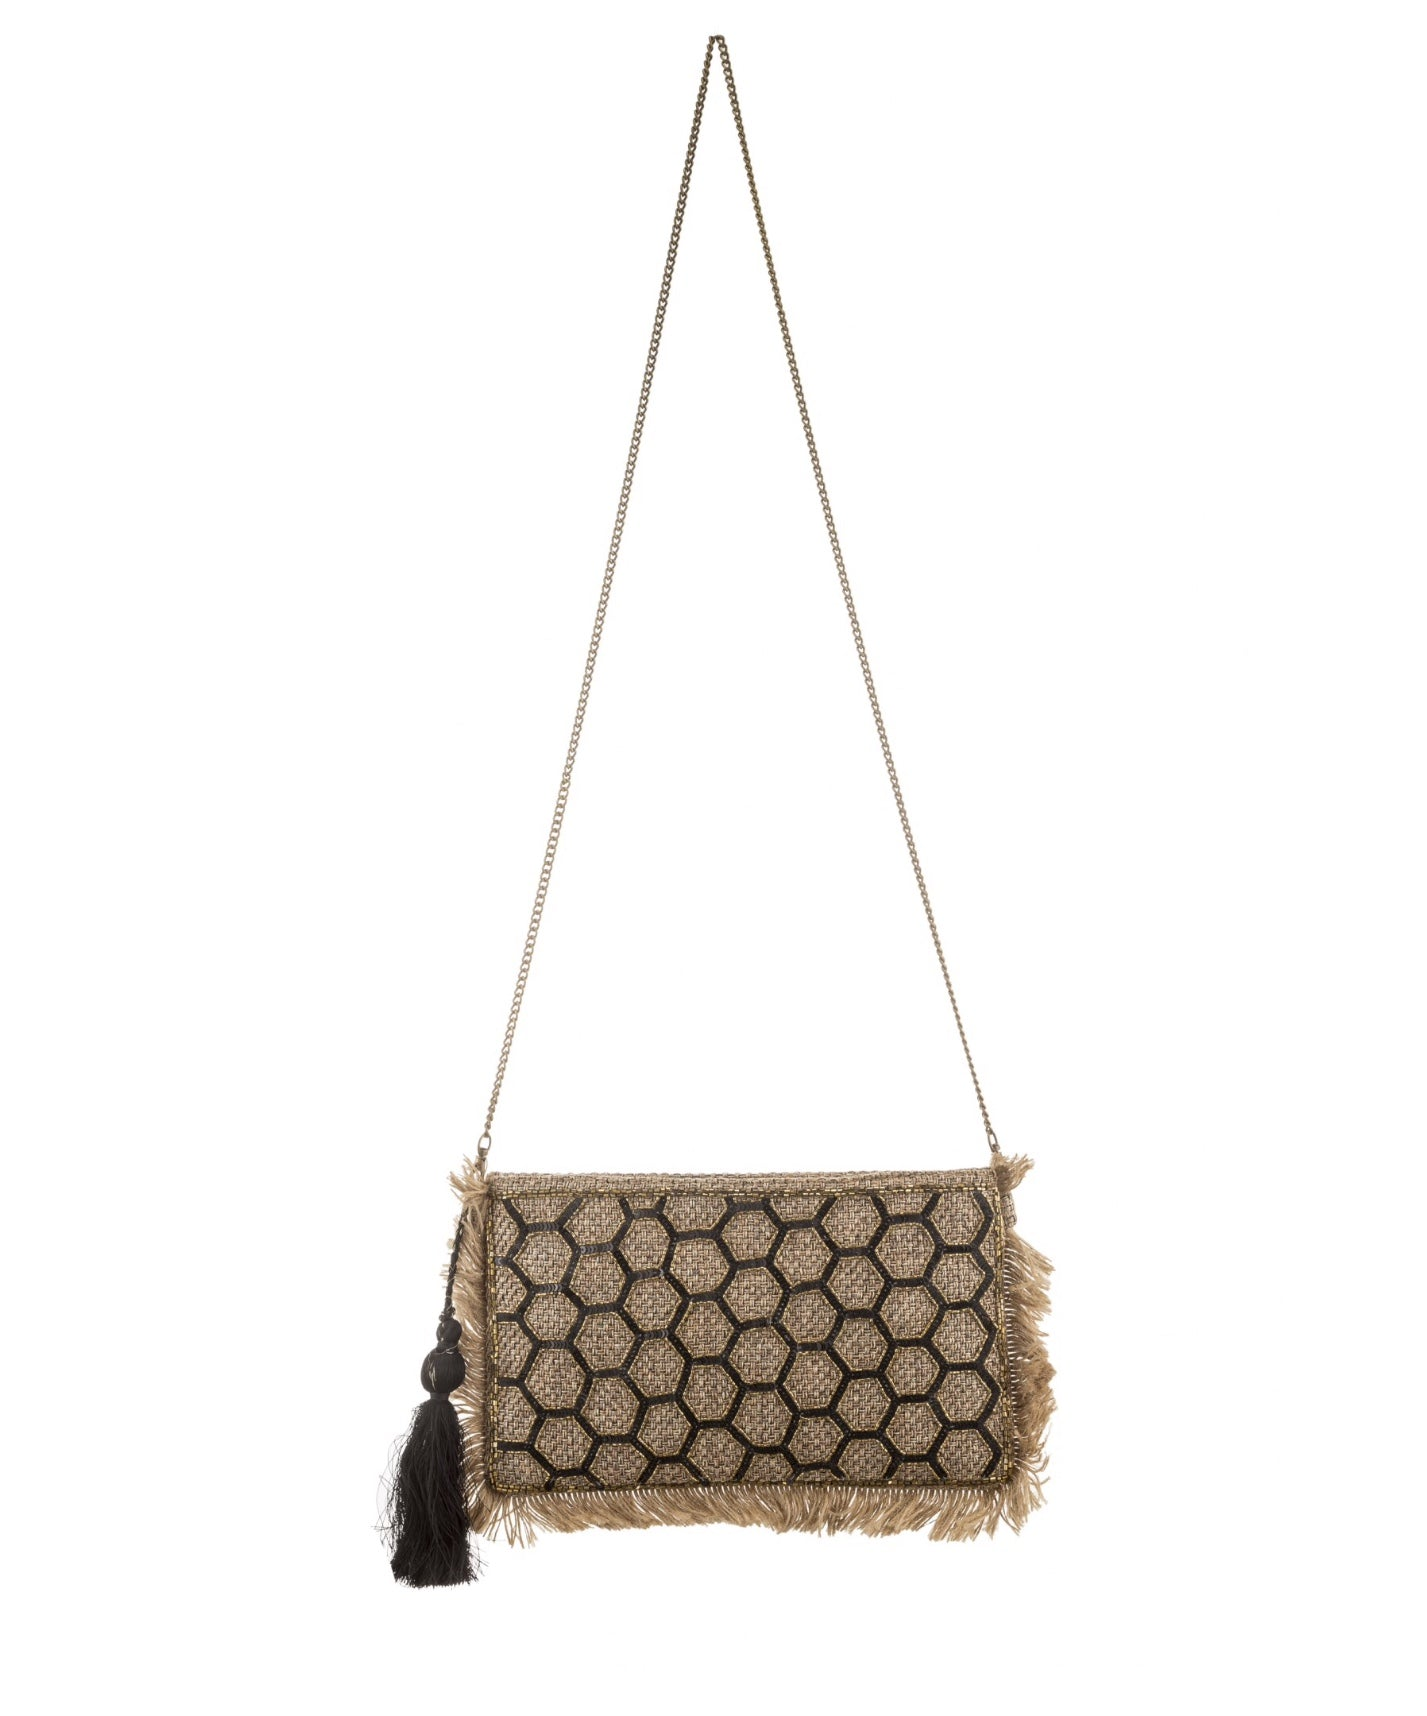 Embroidered Woven Crossbody Bag